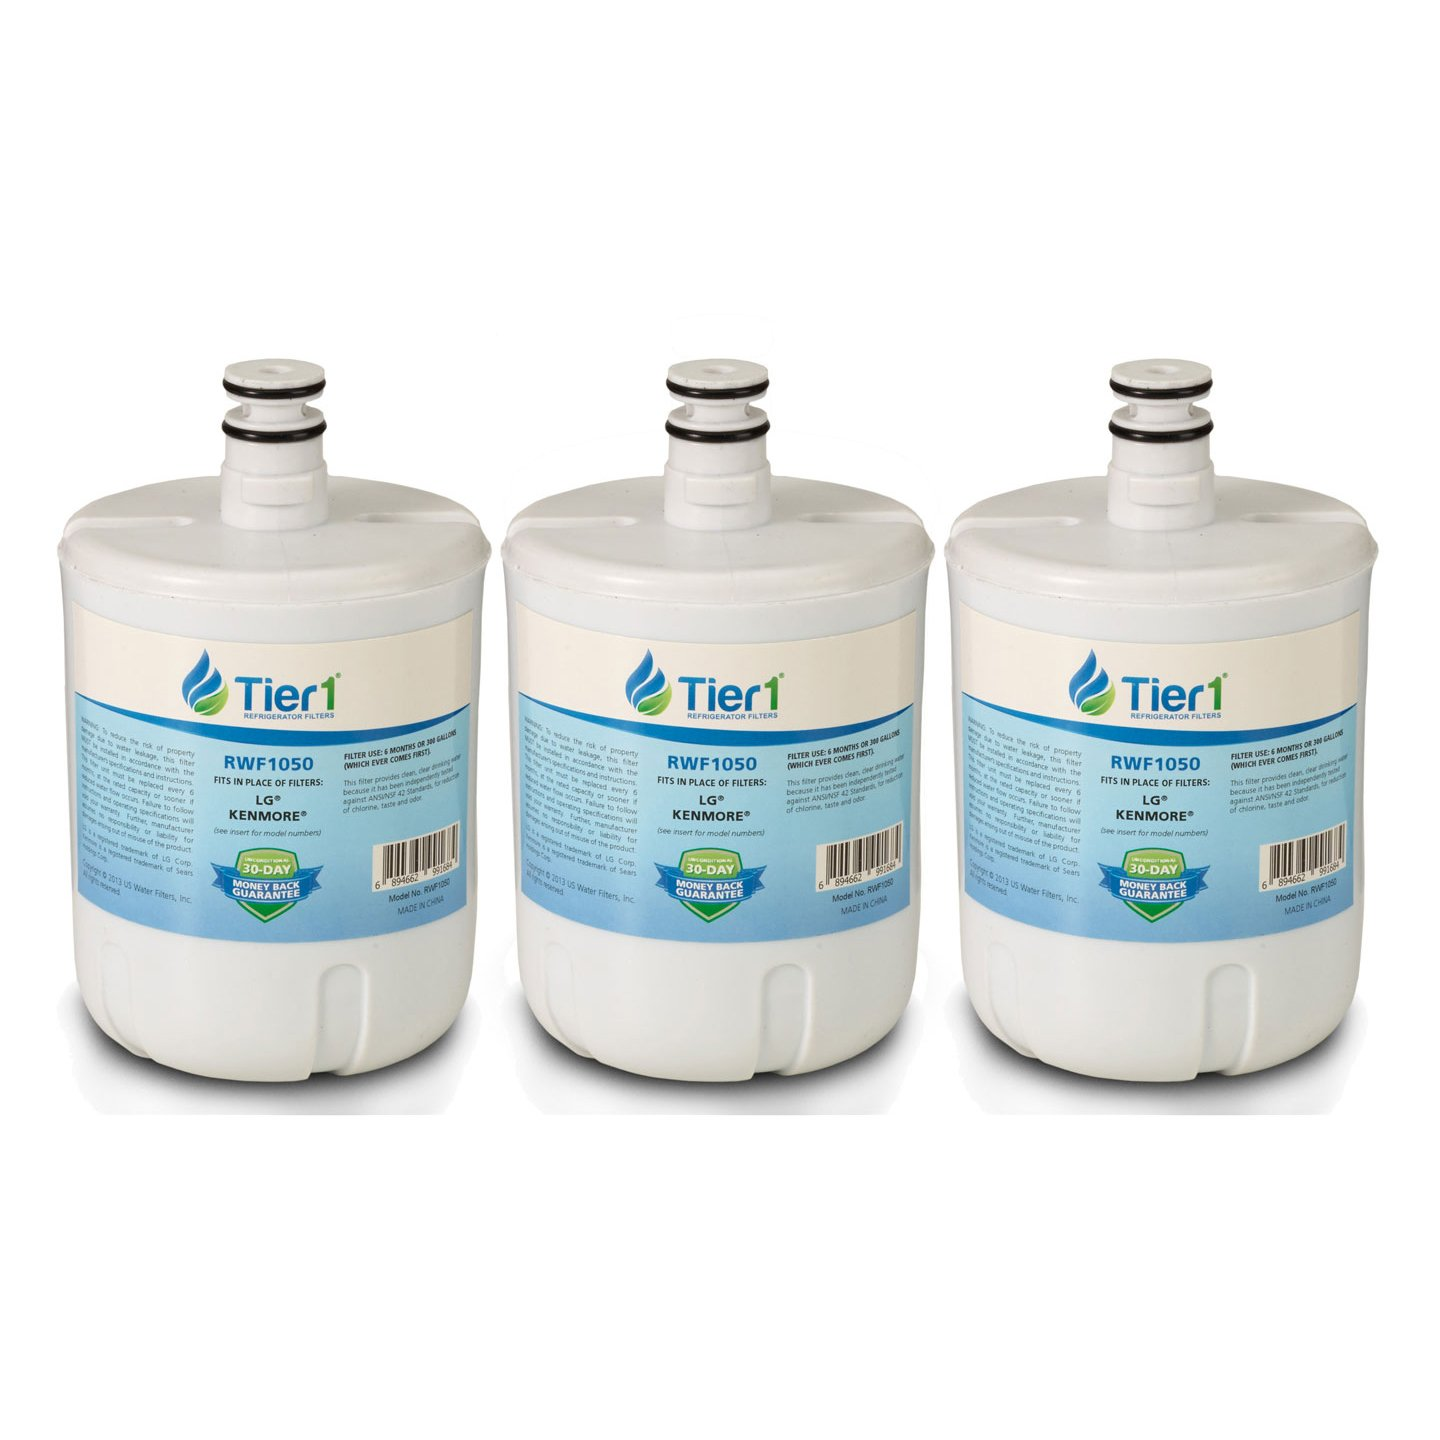 Tier1 Replacement for LG LT500P, 5231JA2002A, GEN11042FR-08, ADQ72910902, ADQ72910907, ADQ72910901 Refrigerator Water Filter 3 Pack